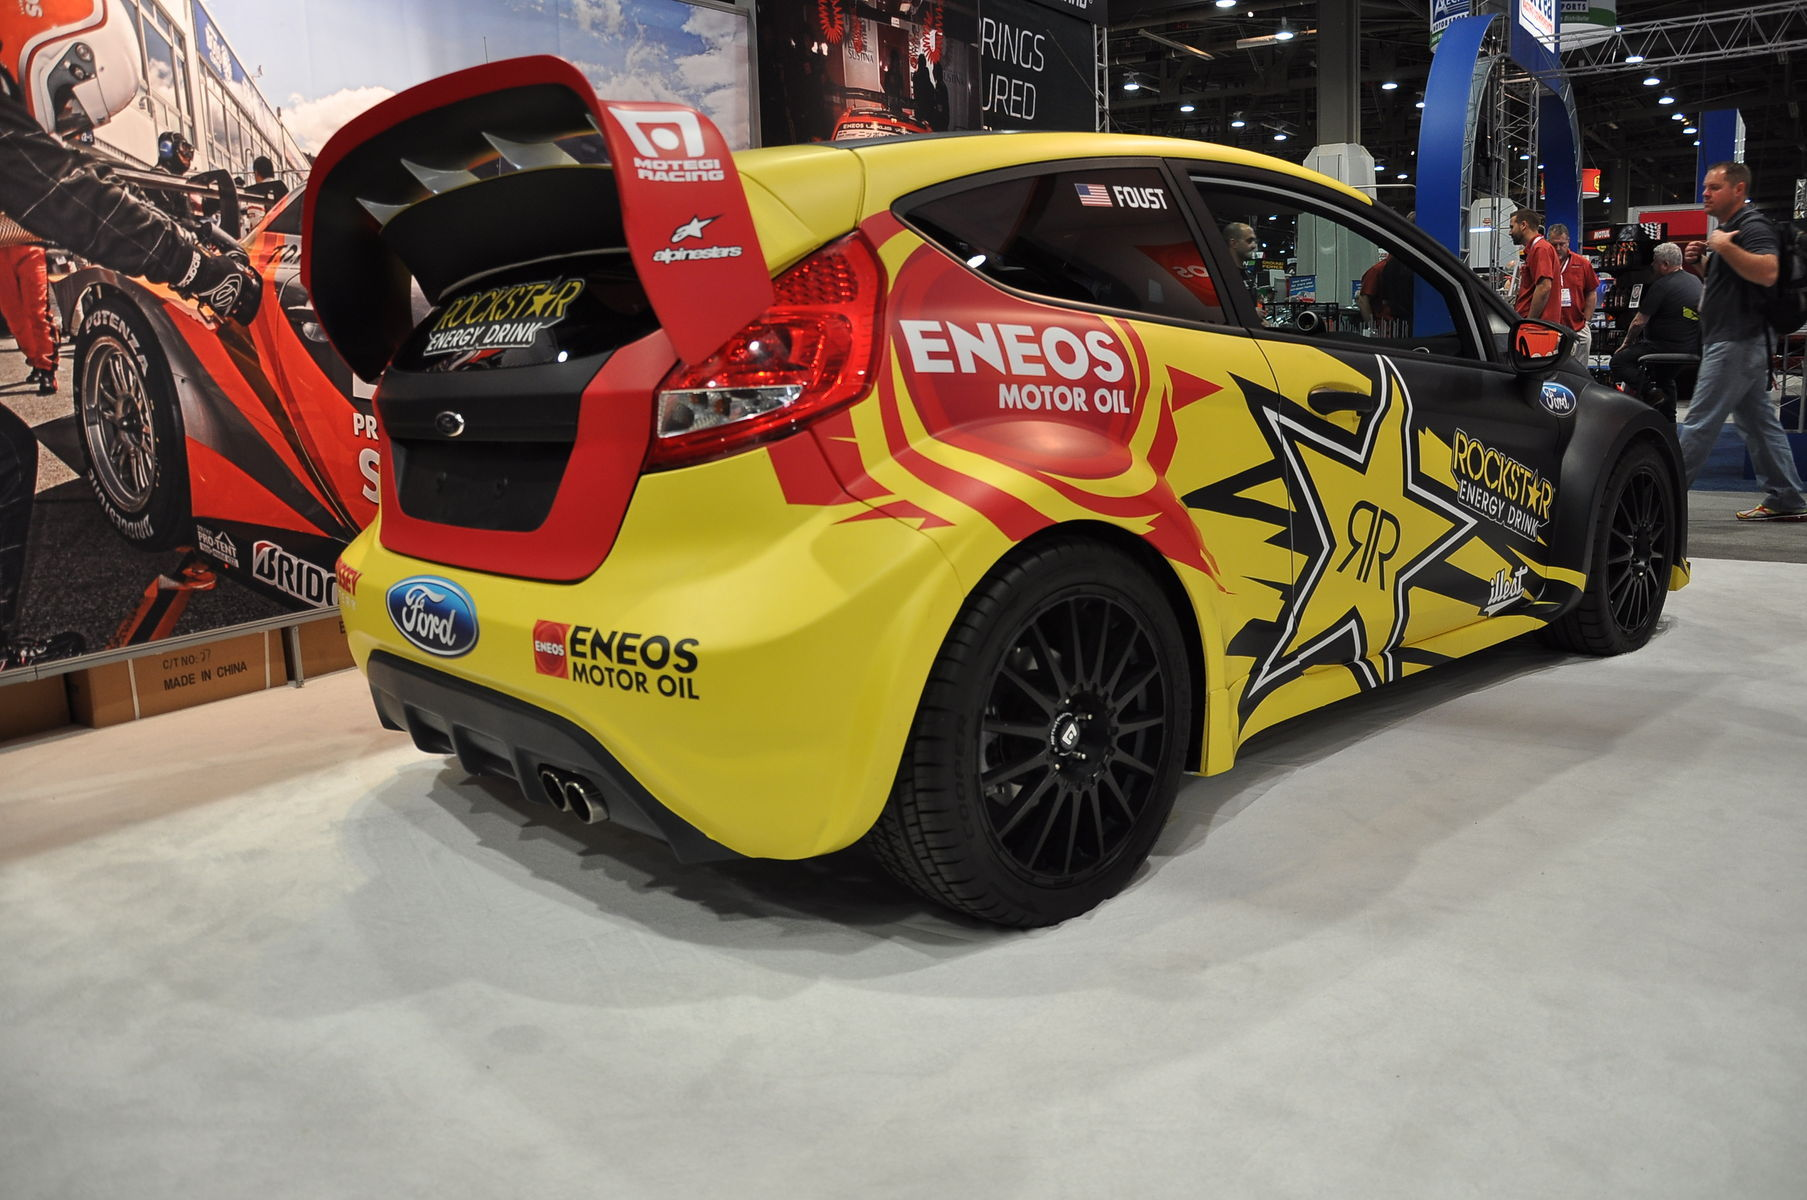 2013 Ford Focus | 2013 Ford Focus Drift Car